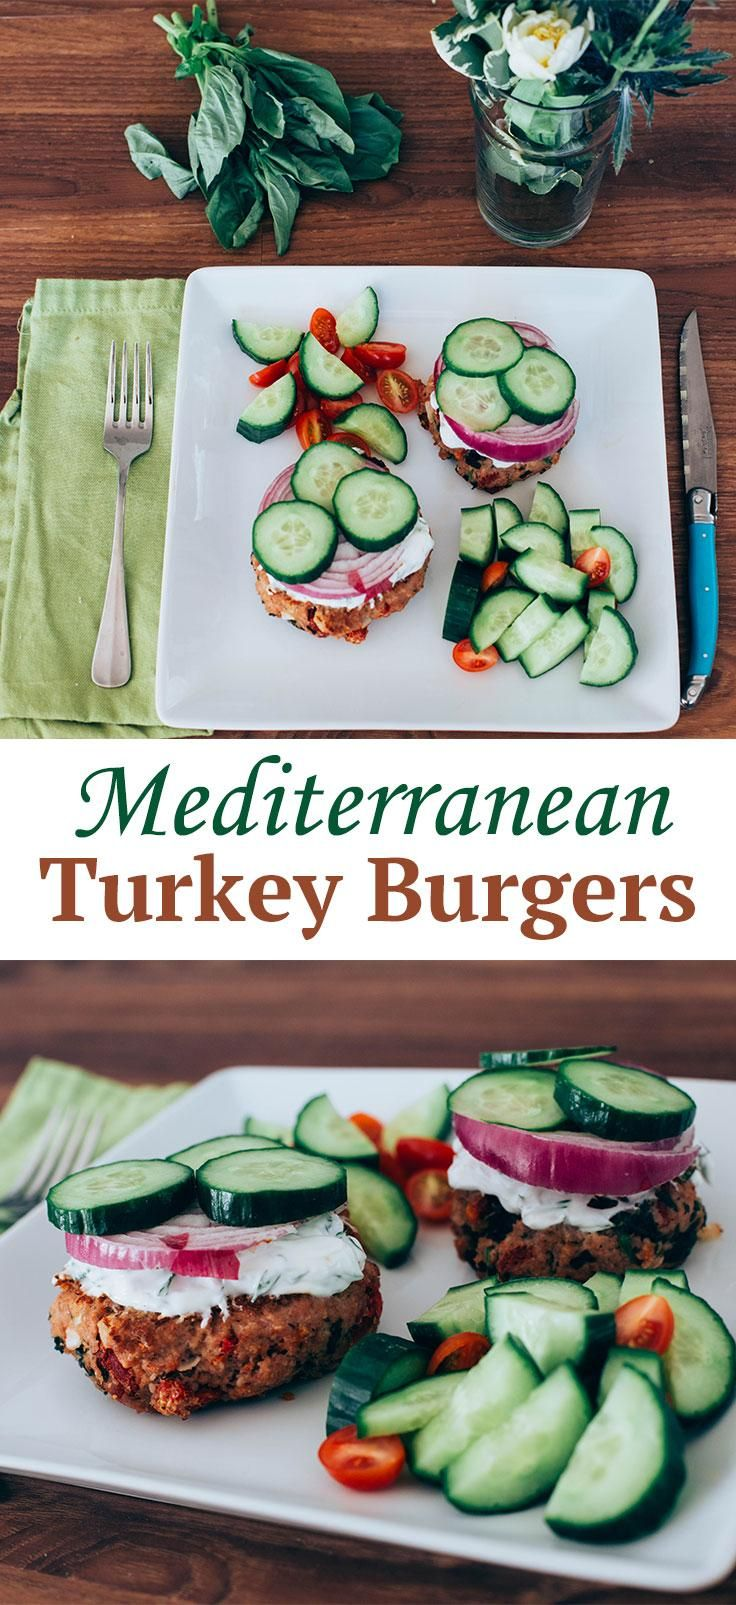 Mediterranean Turkey Burgers -- Topped with crunchy veggies and a tangy yogurt sauce, these high-protein turkey burger patties will fill you up on good stuff without weighing you down. // lunches // dinners // nutrition // healthy recipes // sun-dried tomatoes // feta cheese // beachbody blog